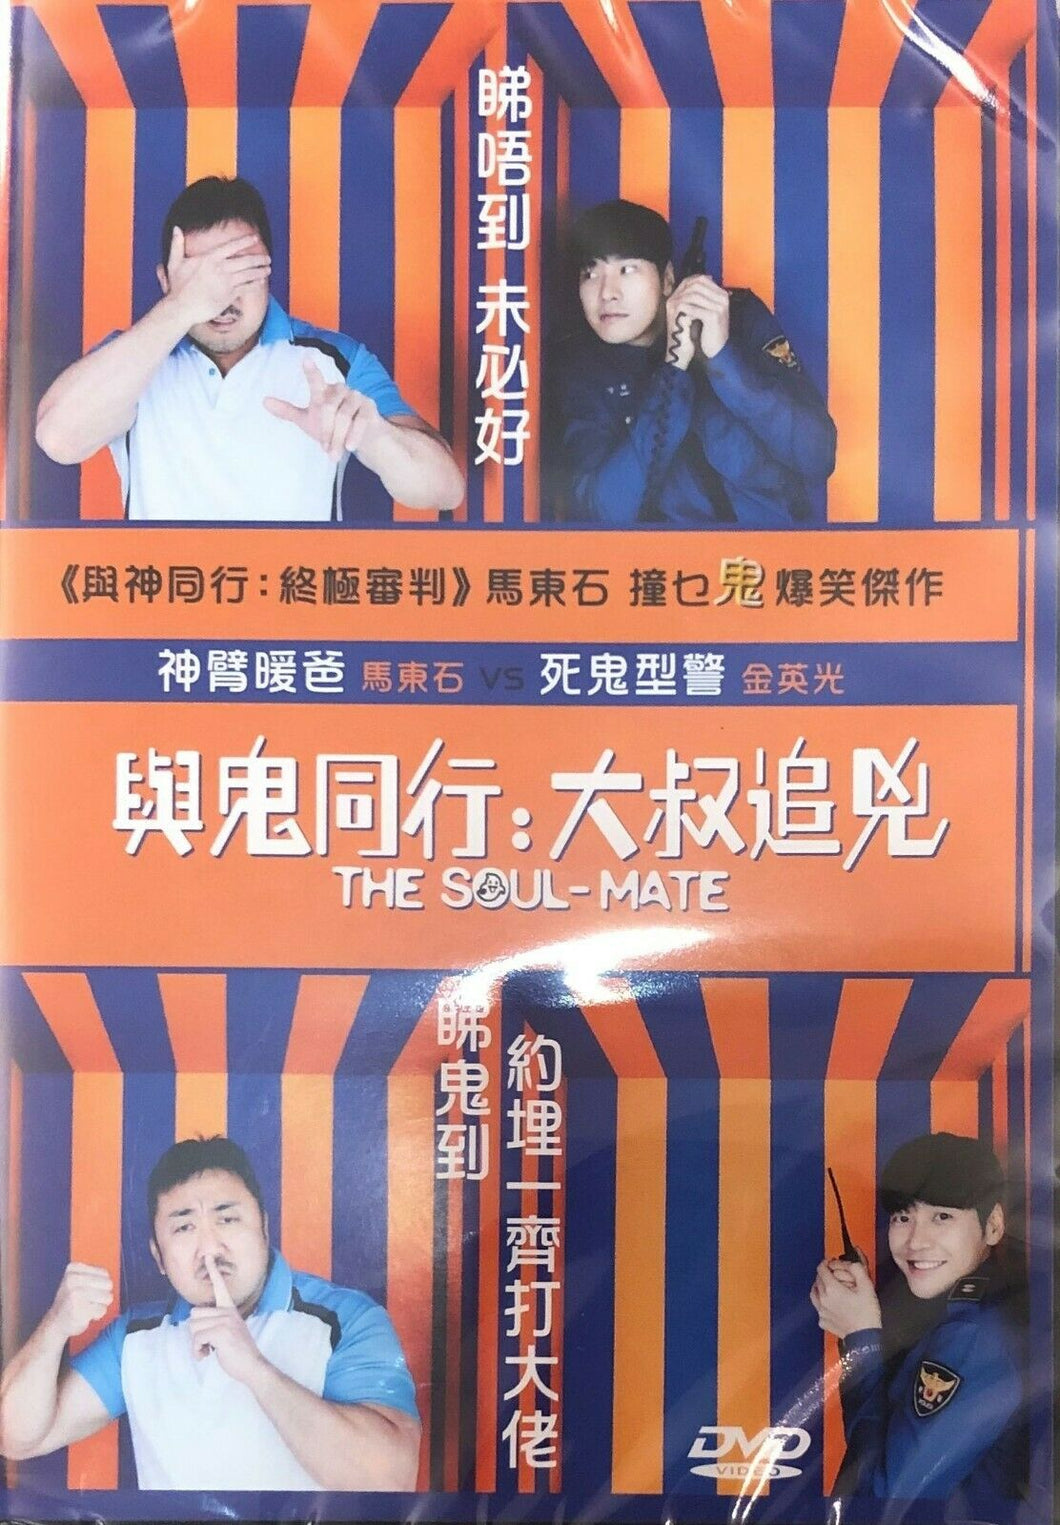 Soul Mate 2018 (Korean Movie) DVD with English Subtitles (Region 3)  與鬼同行: 大叔追兇